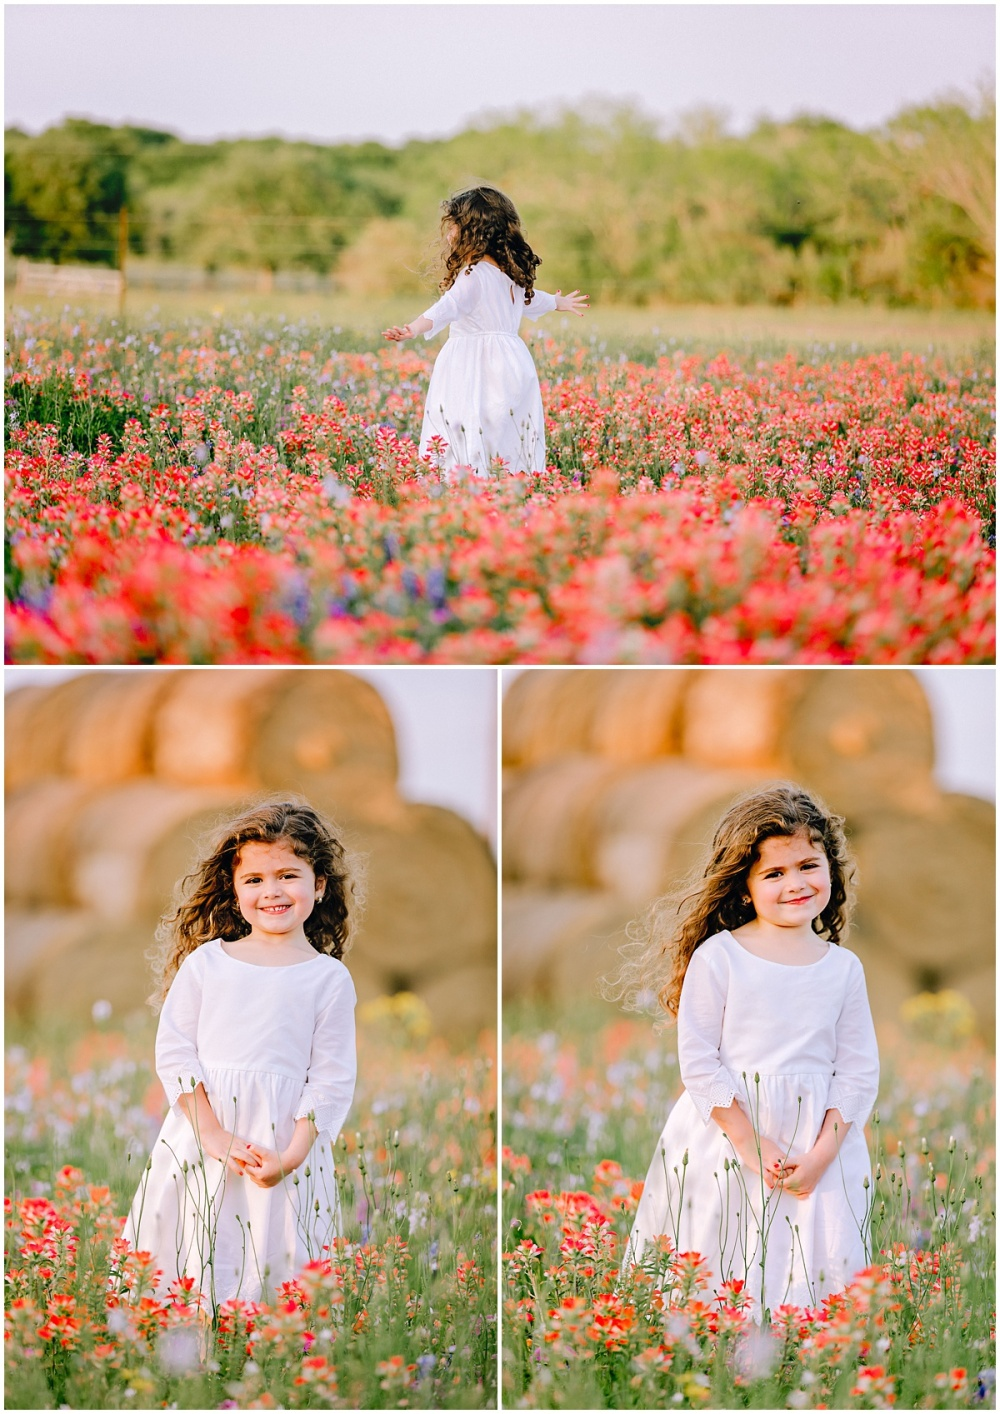 Wildflowers-Texas-Bluebonnets-Spring-Birthday-Photo-Session-Kids-Carly-Barton-Photography_0002.jpg